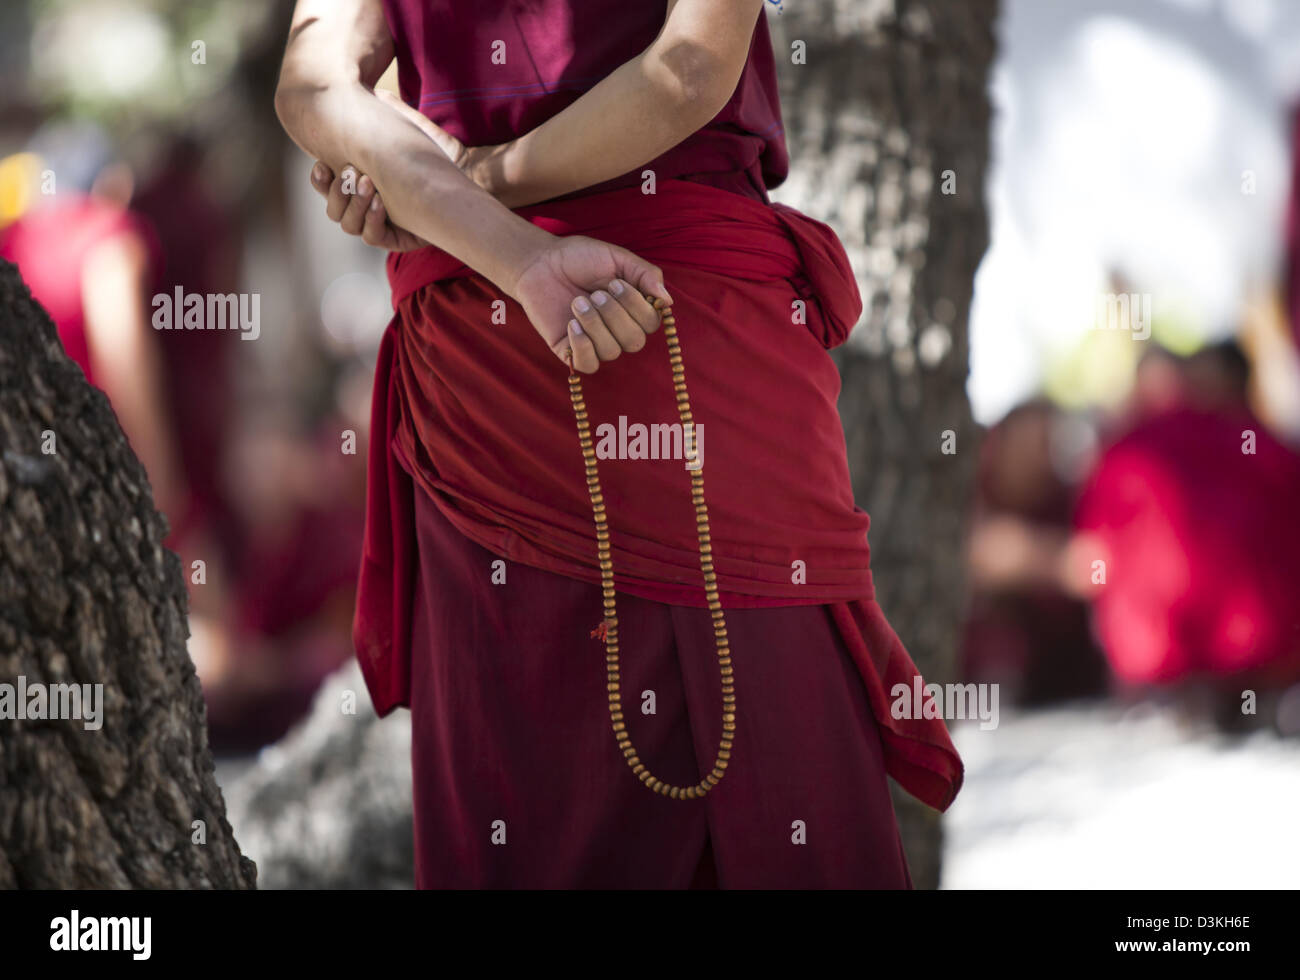 A monk in debate with hands clasped behind back, prayer beads in his hand, Sera Monastery, Lhasa, Tibet. - Stock Image